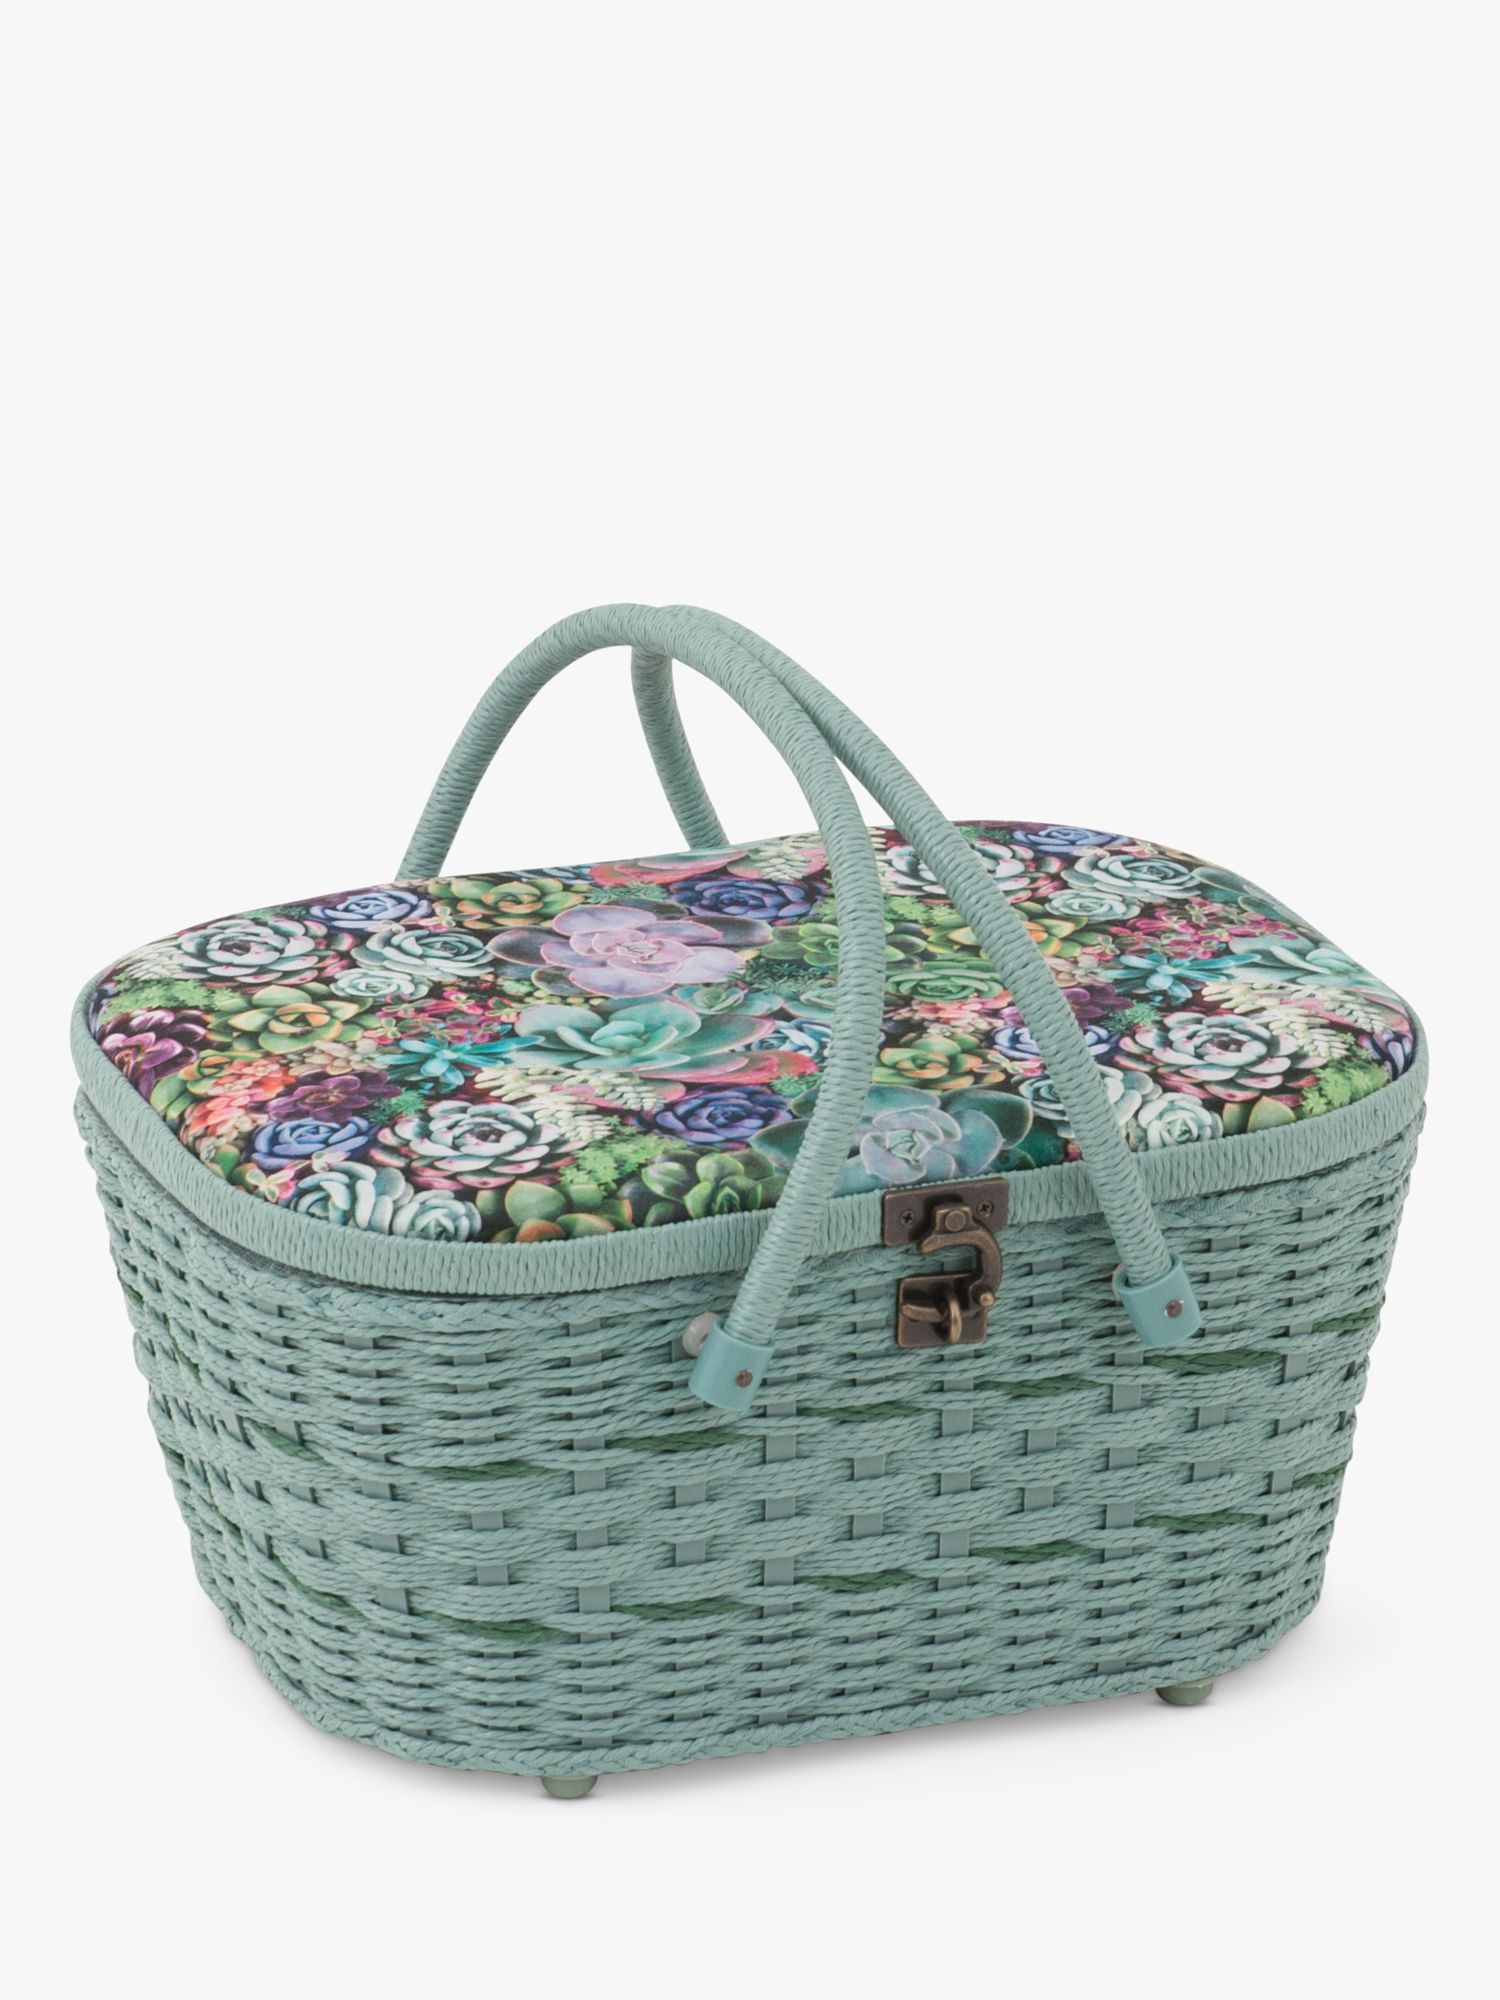 Groves Groves Succulent Weave Sewing Box, Green